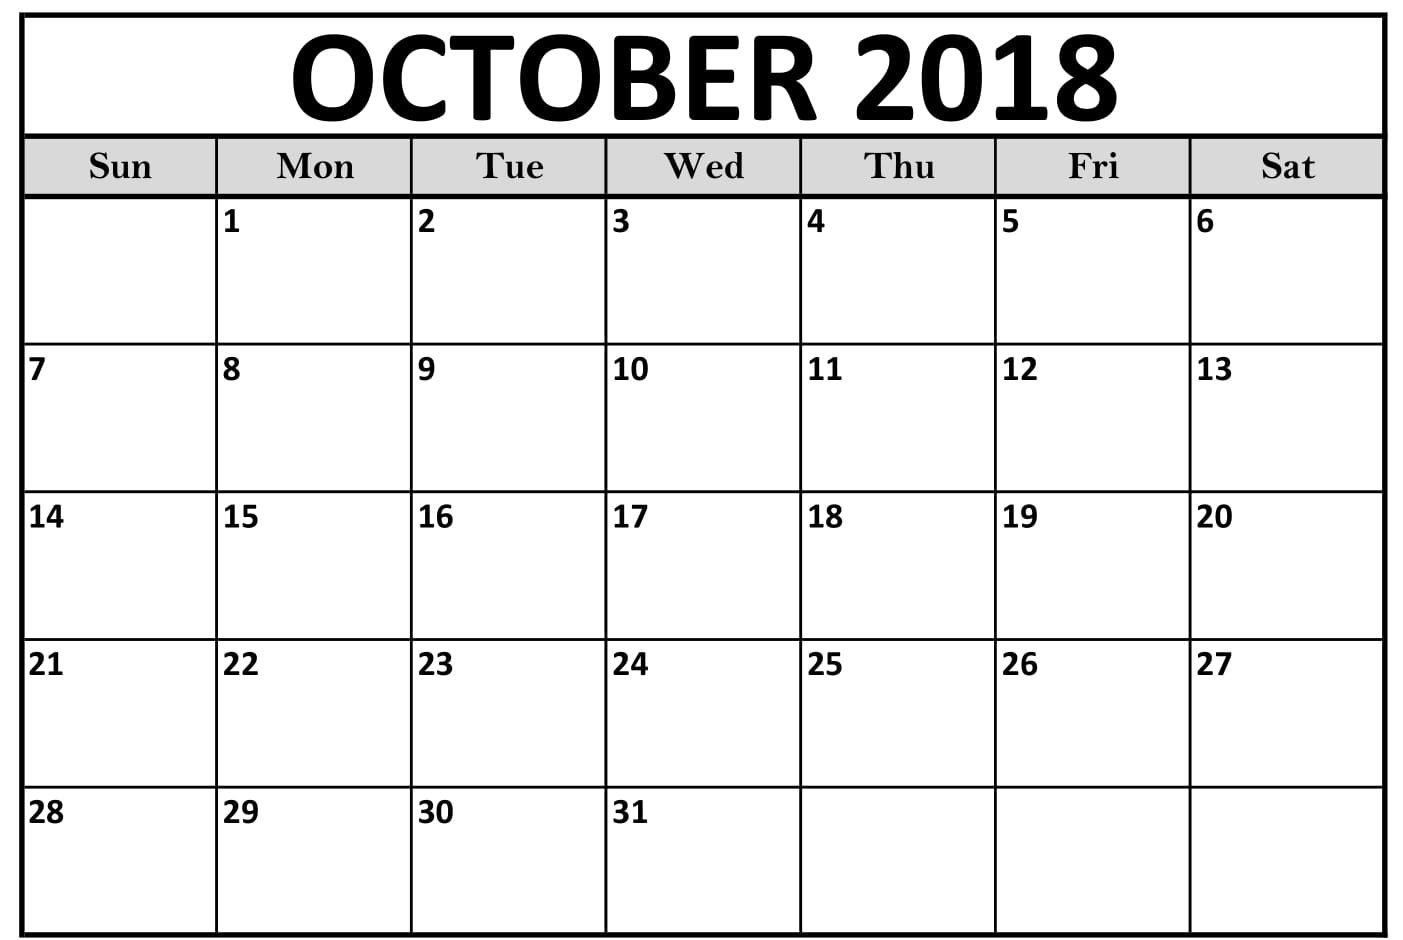 October Monthly Calendar For 2018